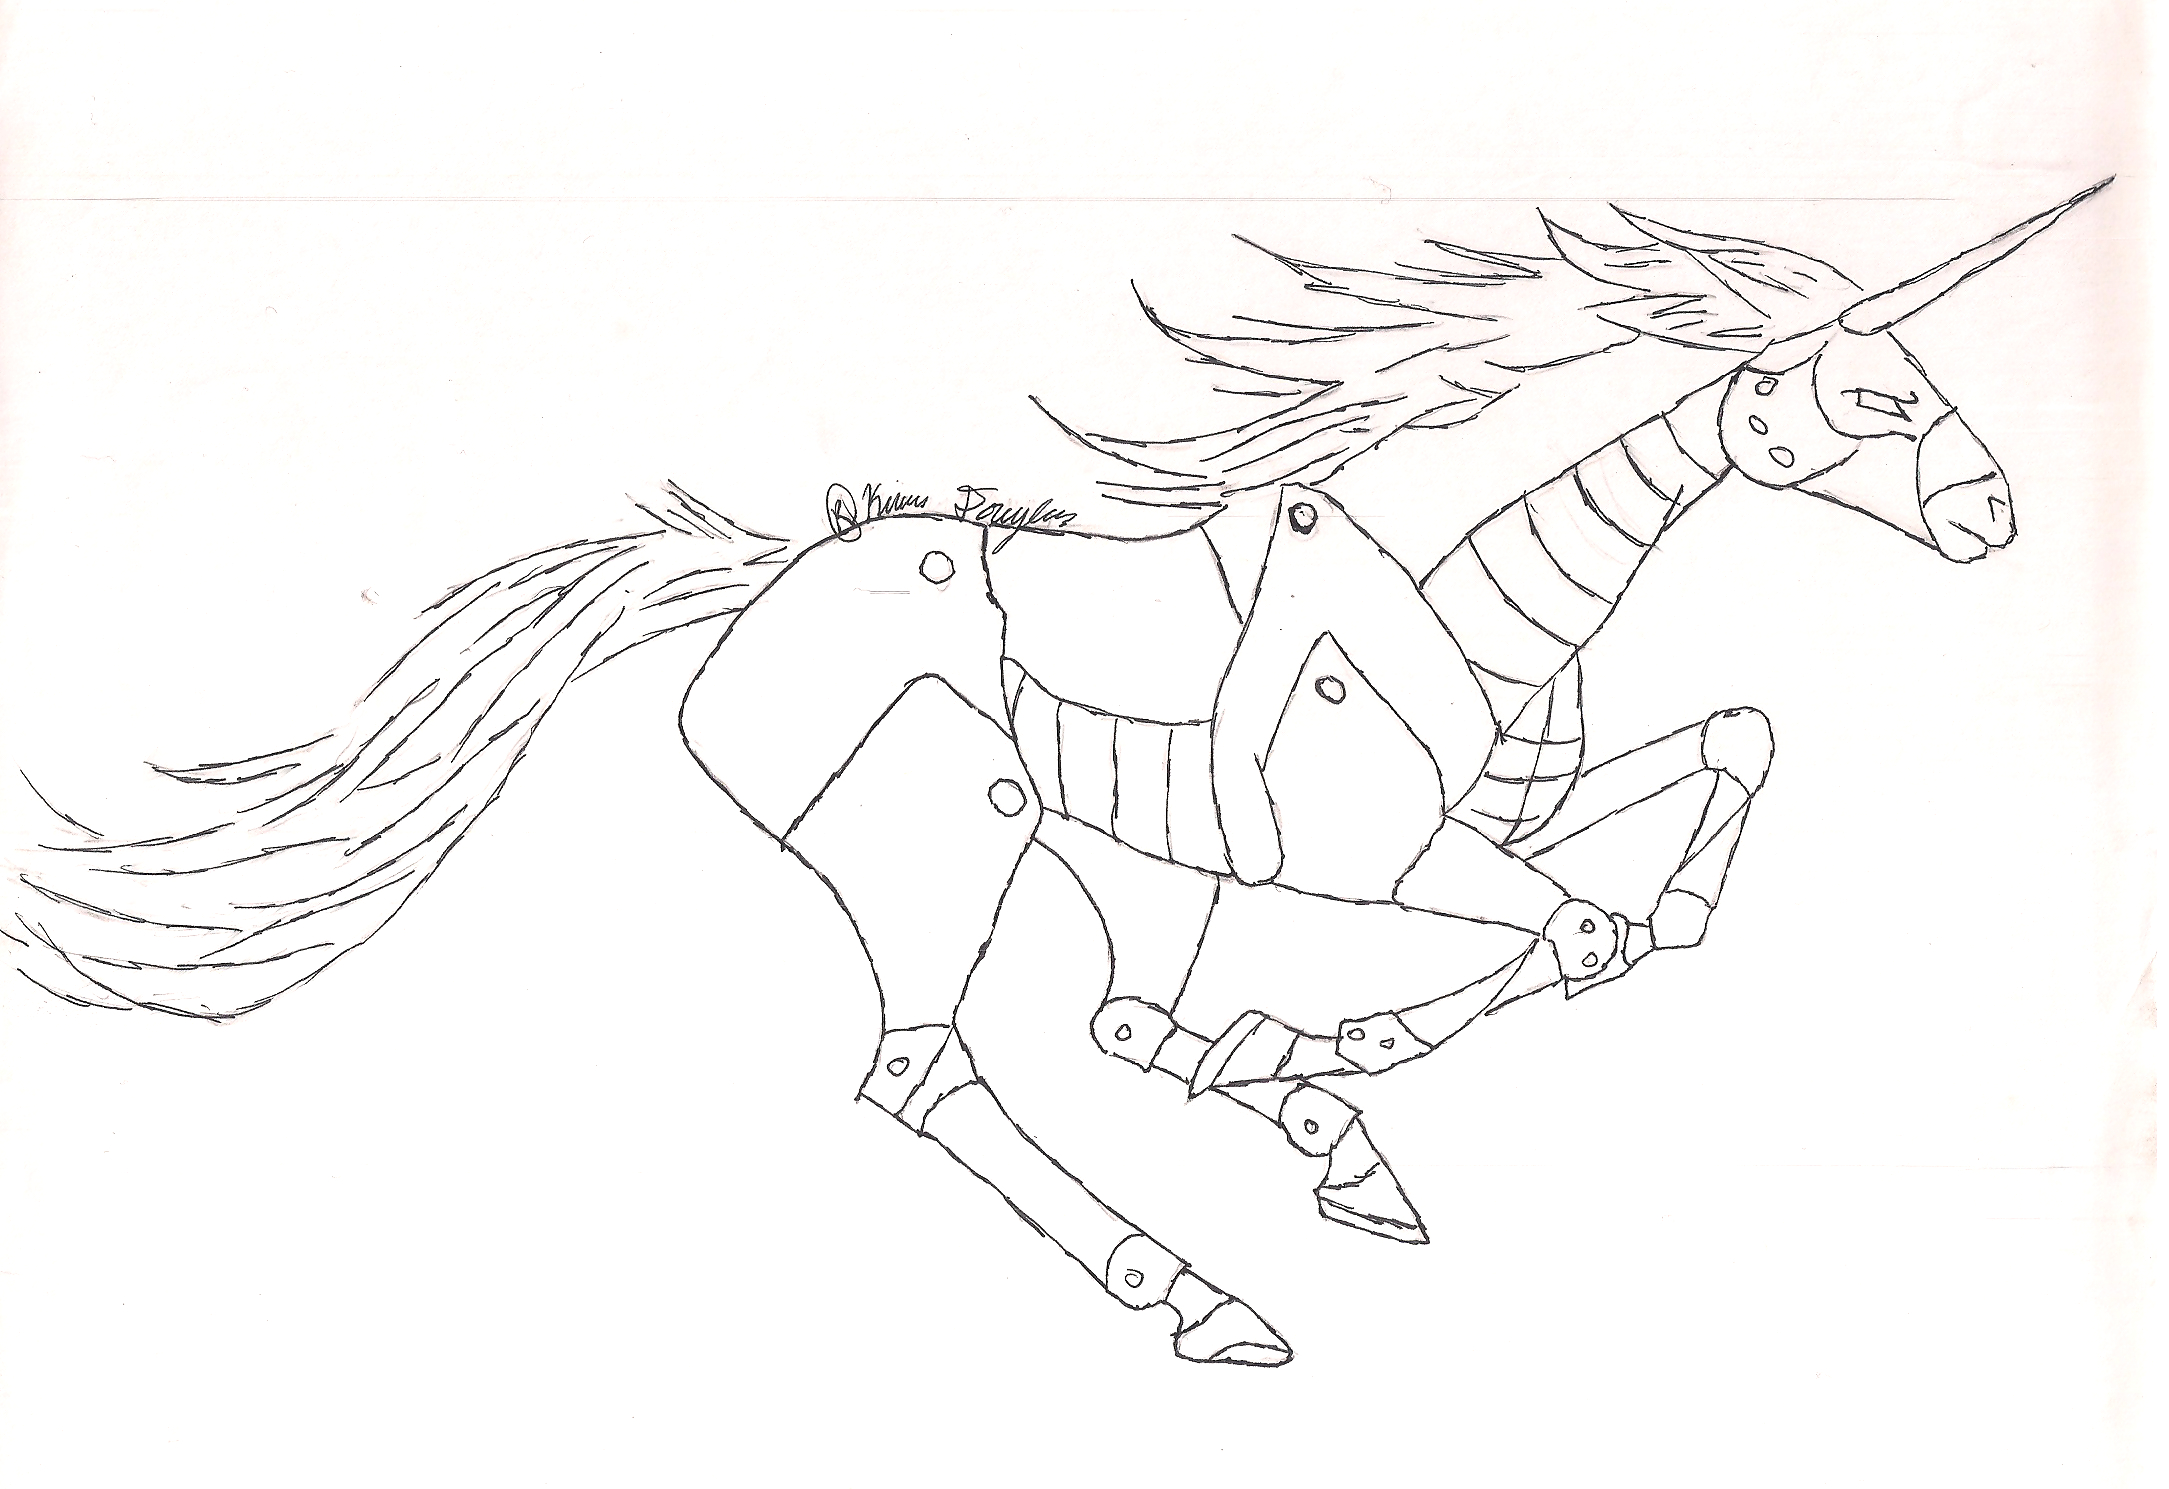 Line Art Robot : Robot unicorn line art by kdougfang on deviantart